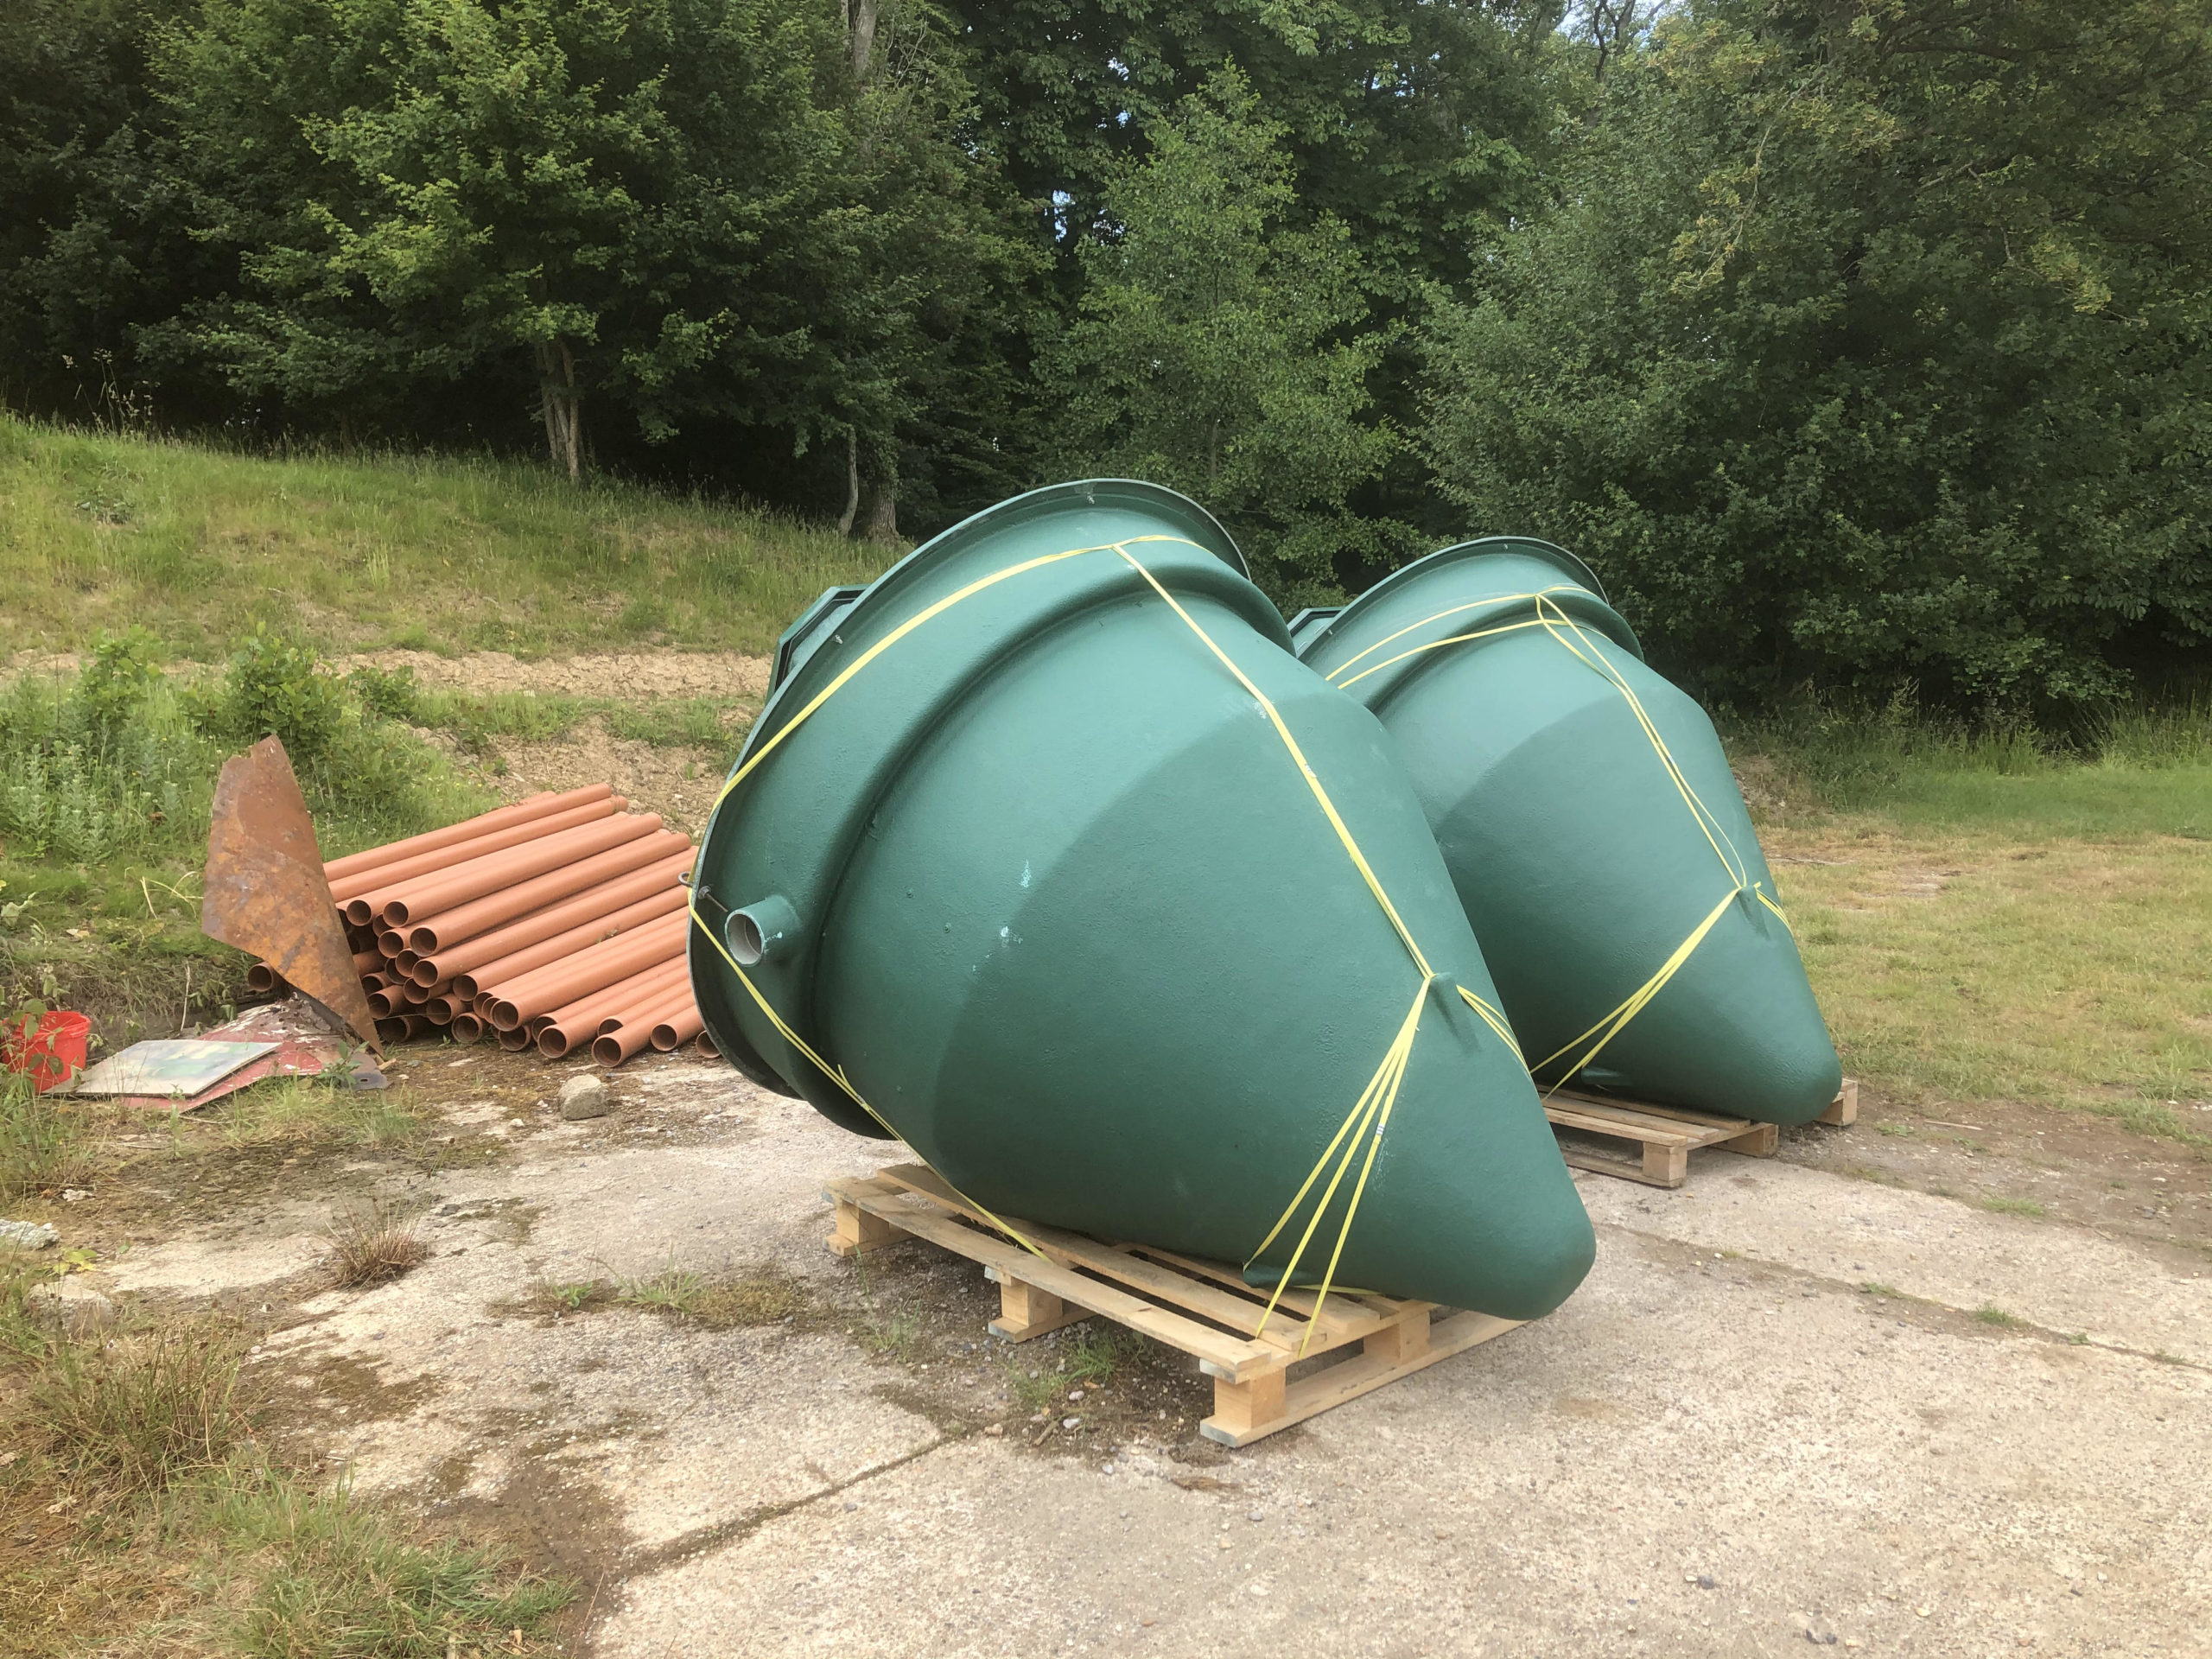 delivery of new biopure sewage treatment plants ready for installation in east sussex